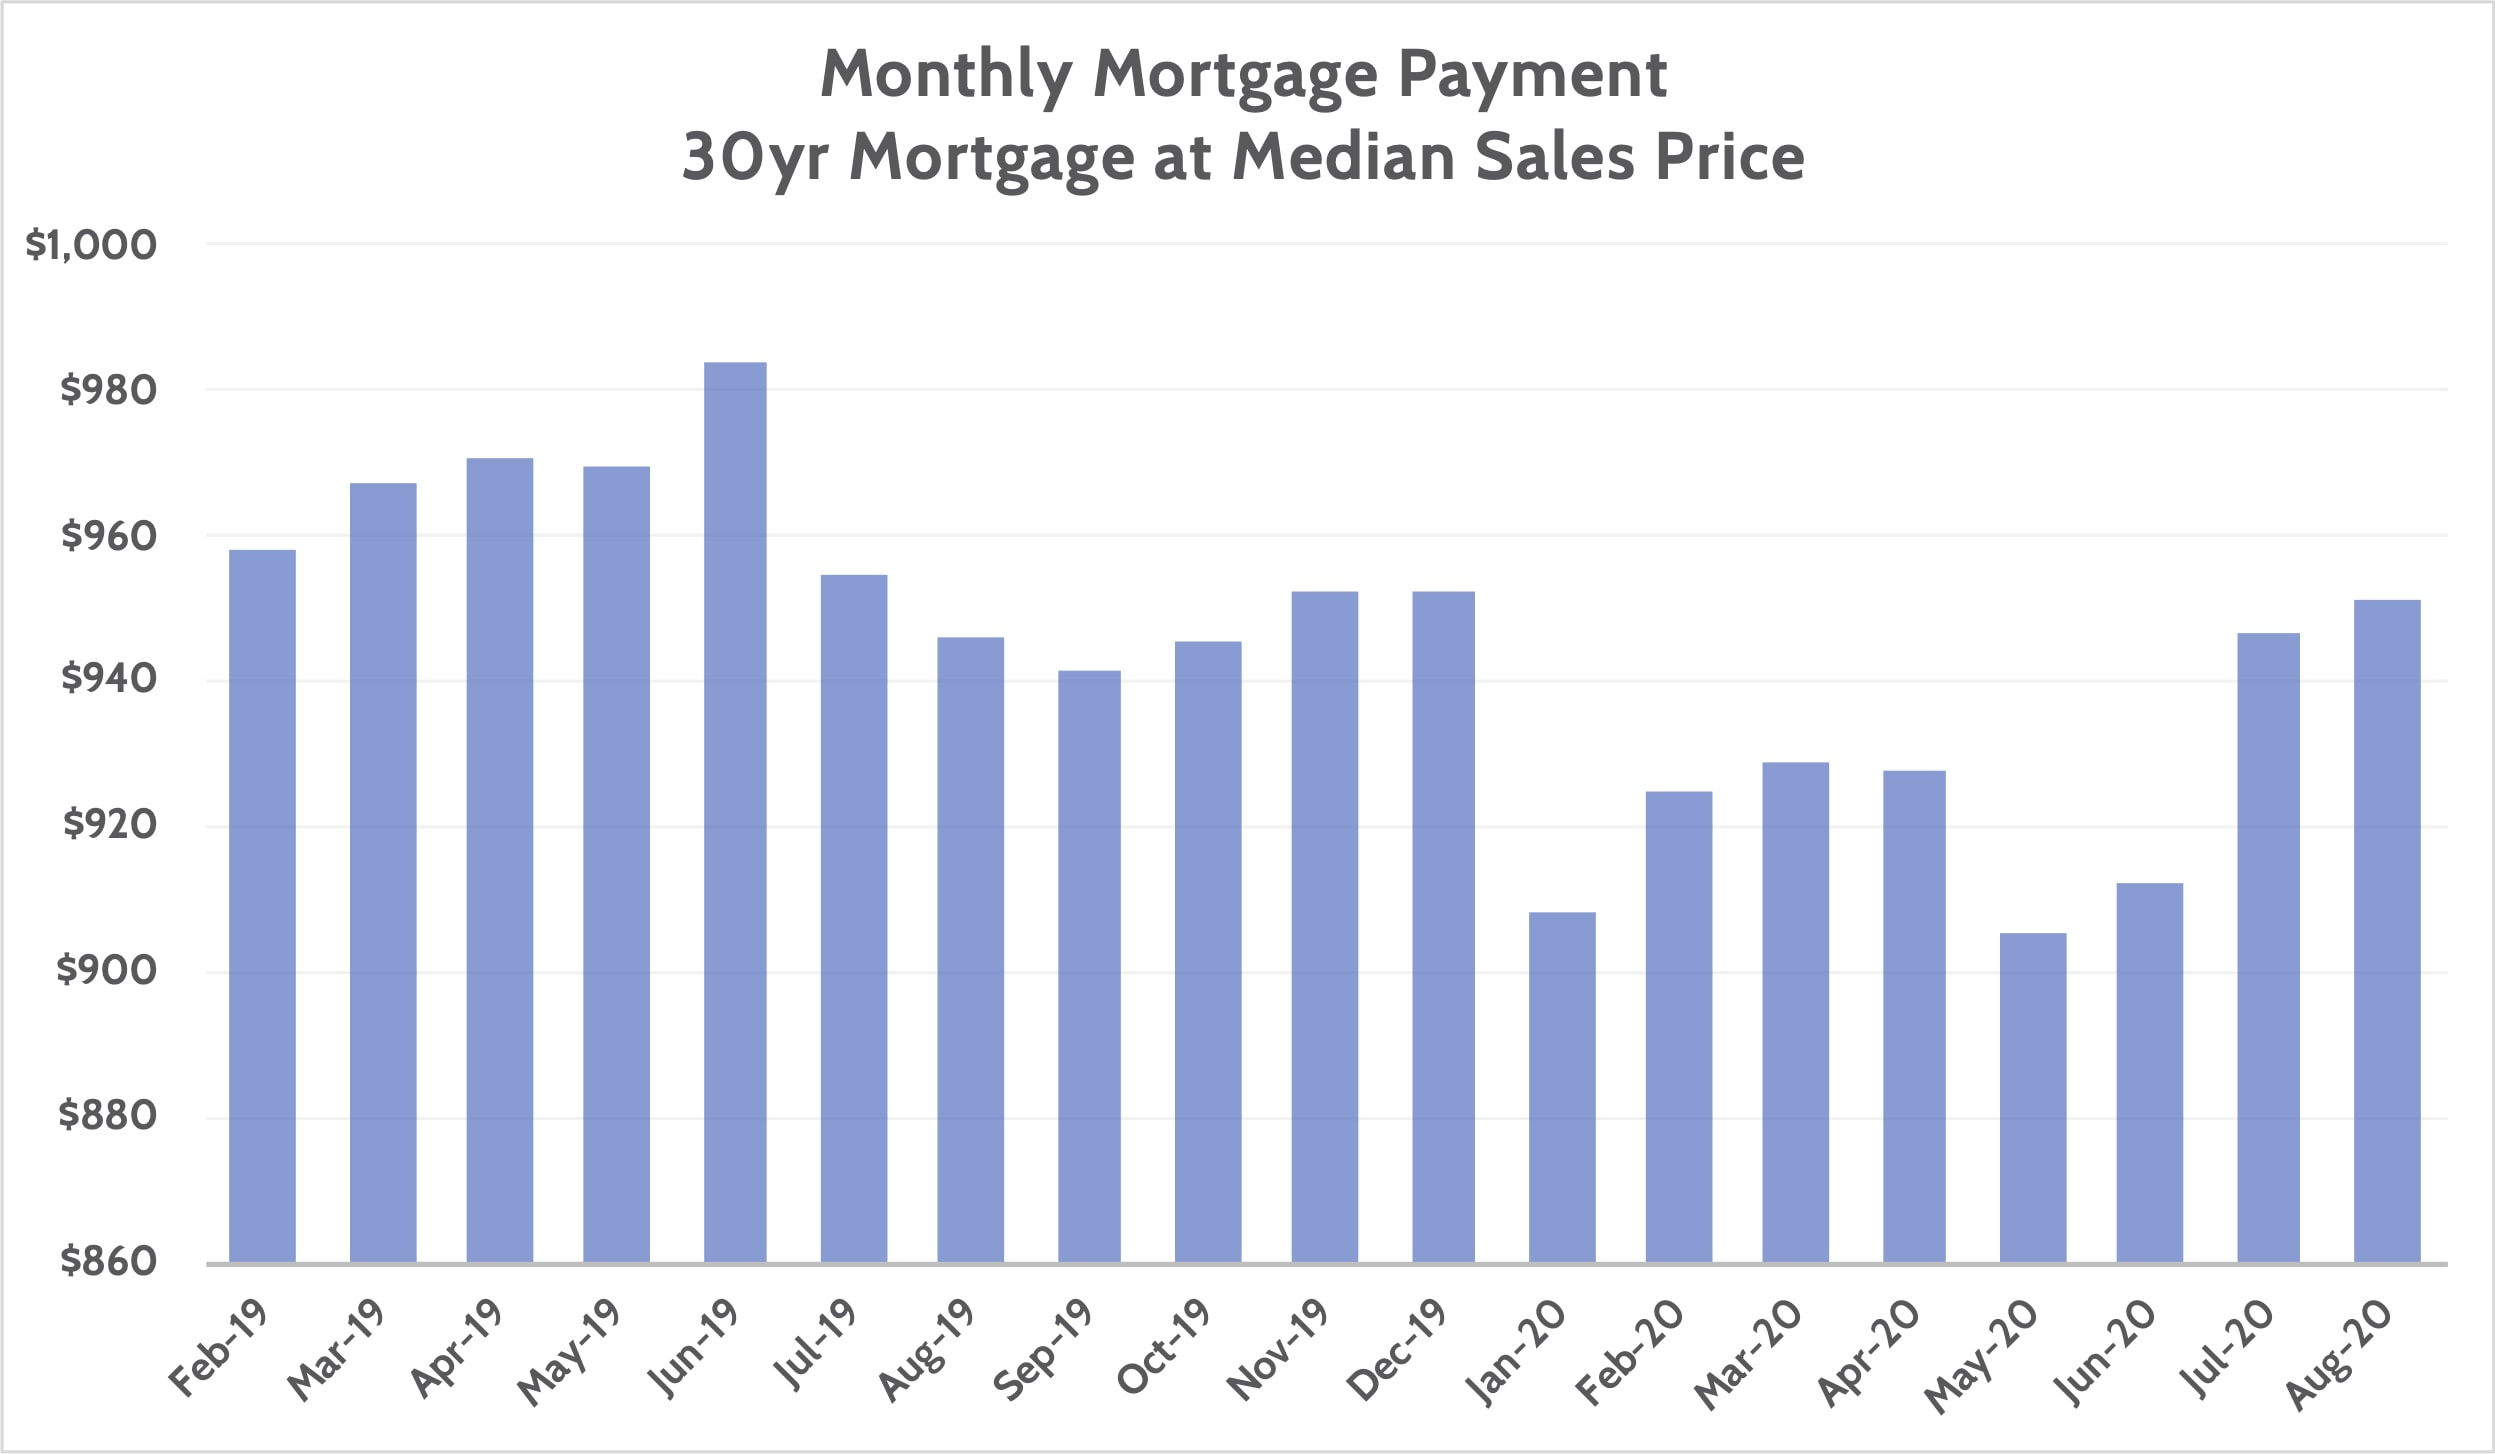 Mortgage Payment With Current Home Prices and Mortgage Rates